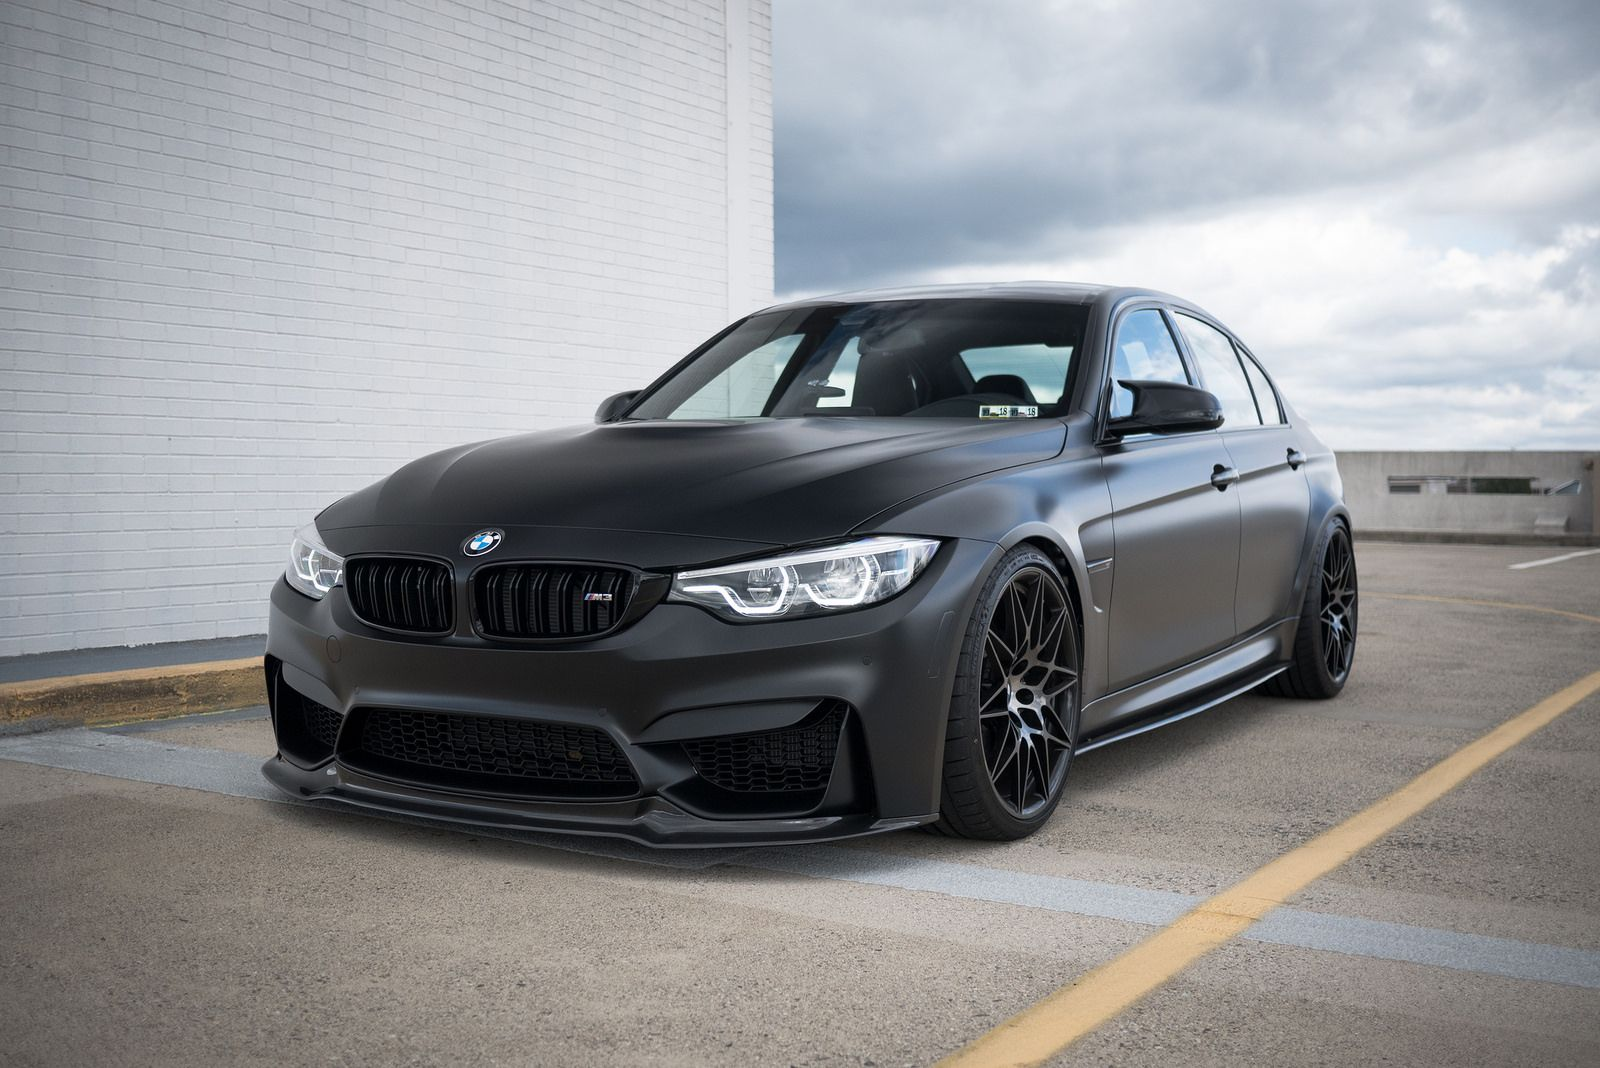 Bmw M3 And Bmw M4 Forum View Single Post 2018 Stealth Black